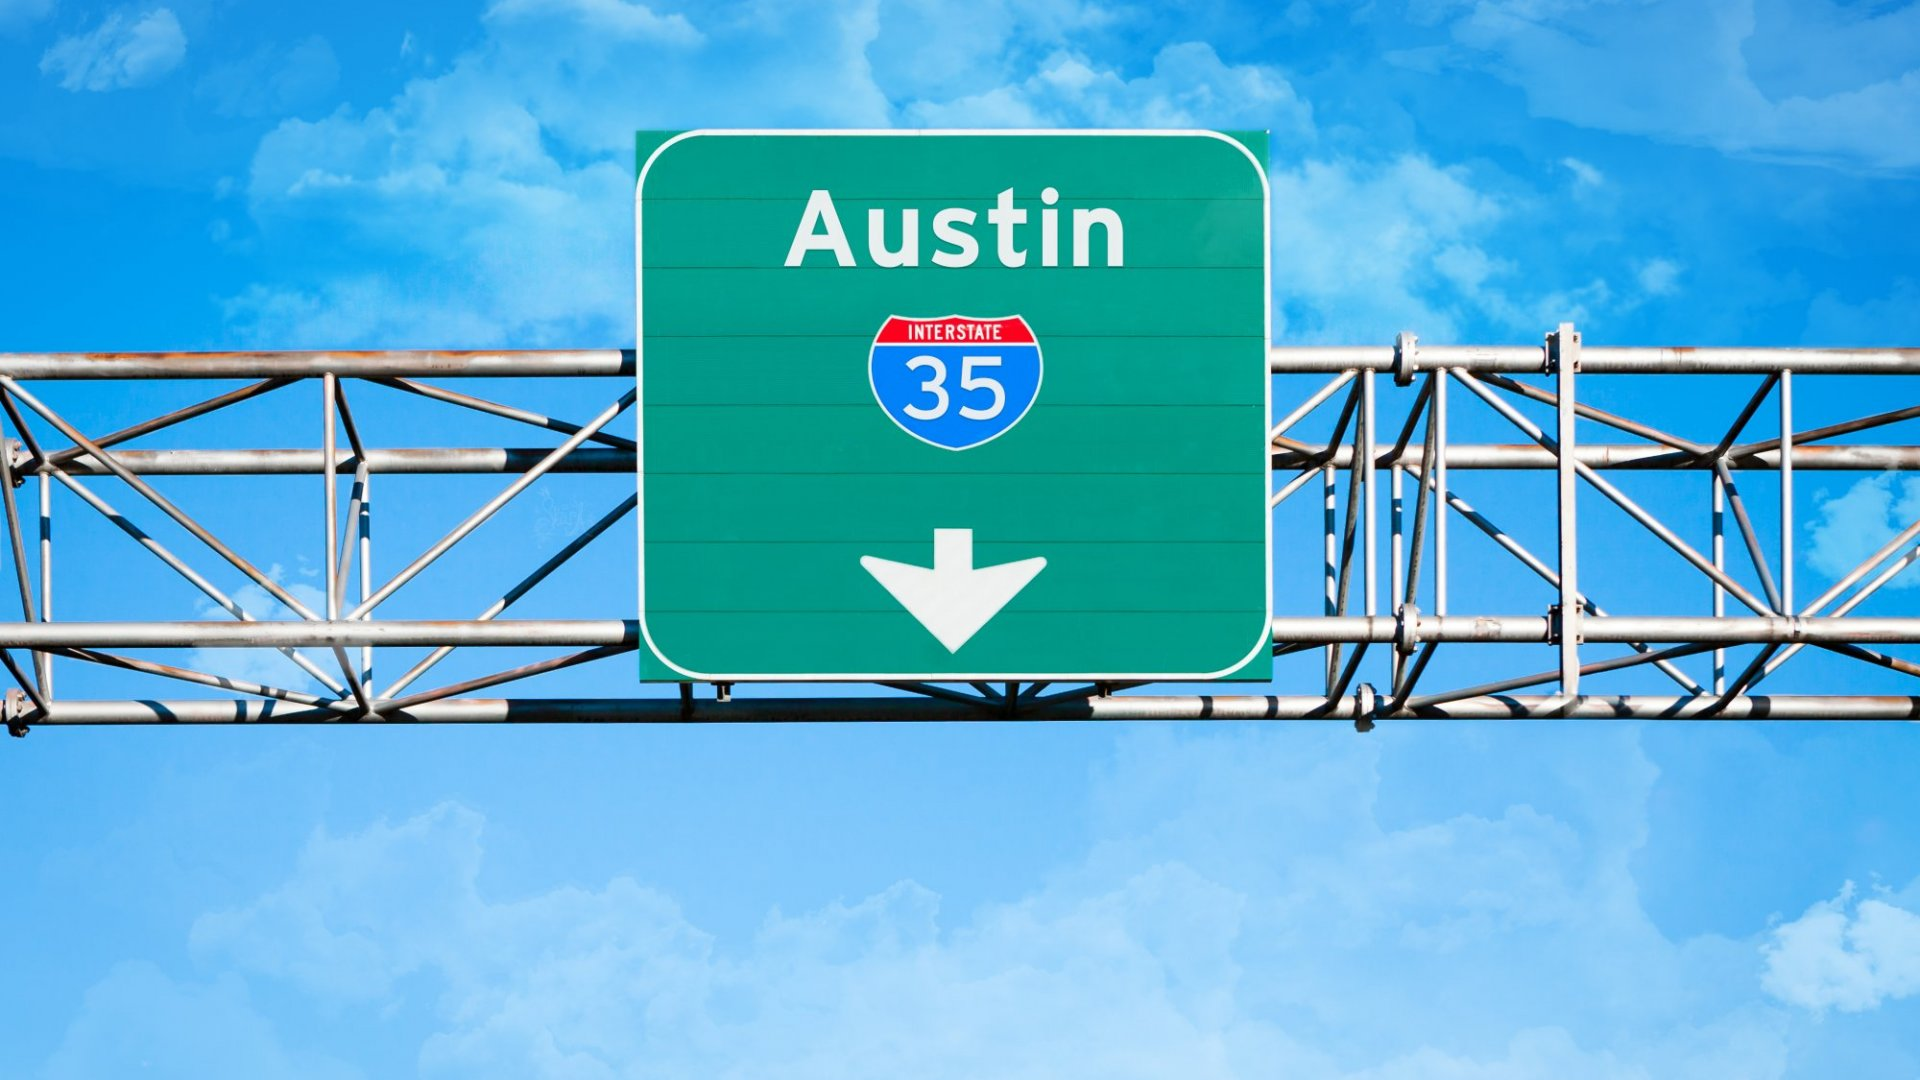 4 Lessons Every Entrepreneur Can Learn From SxSW